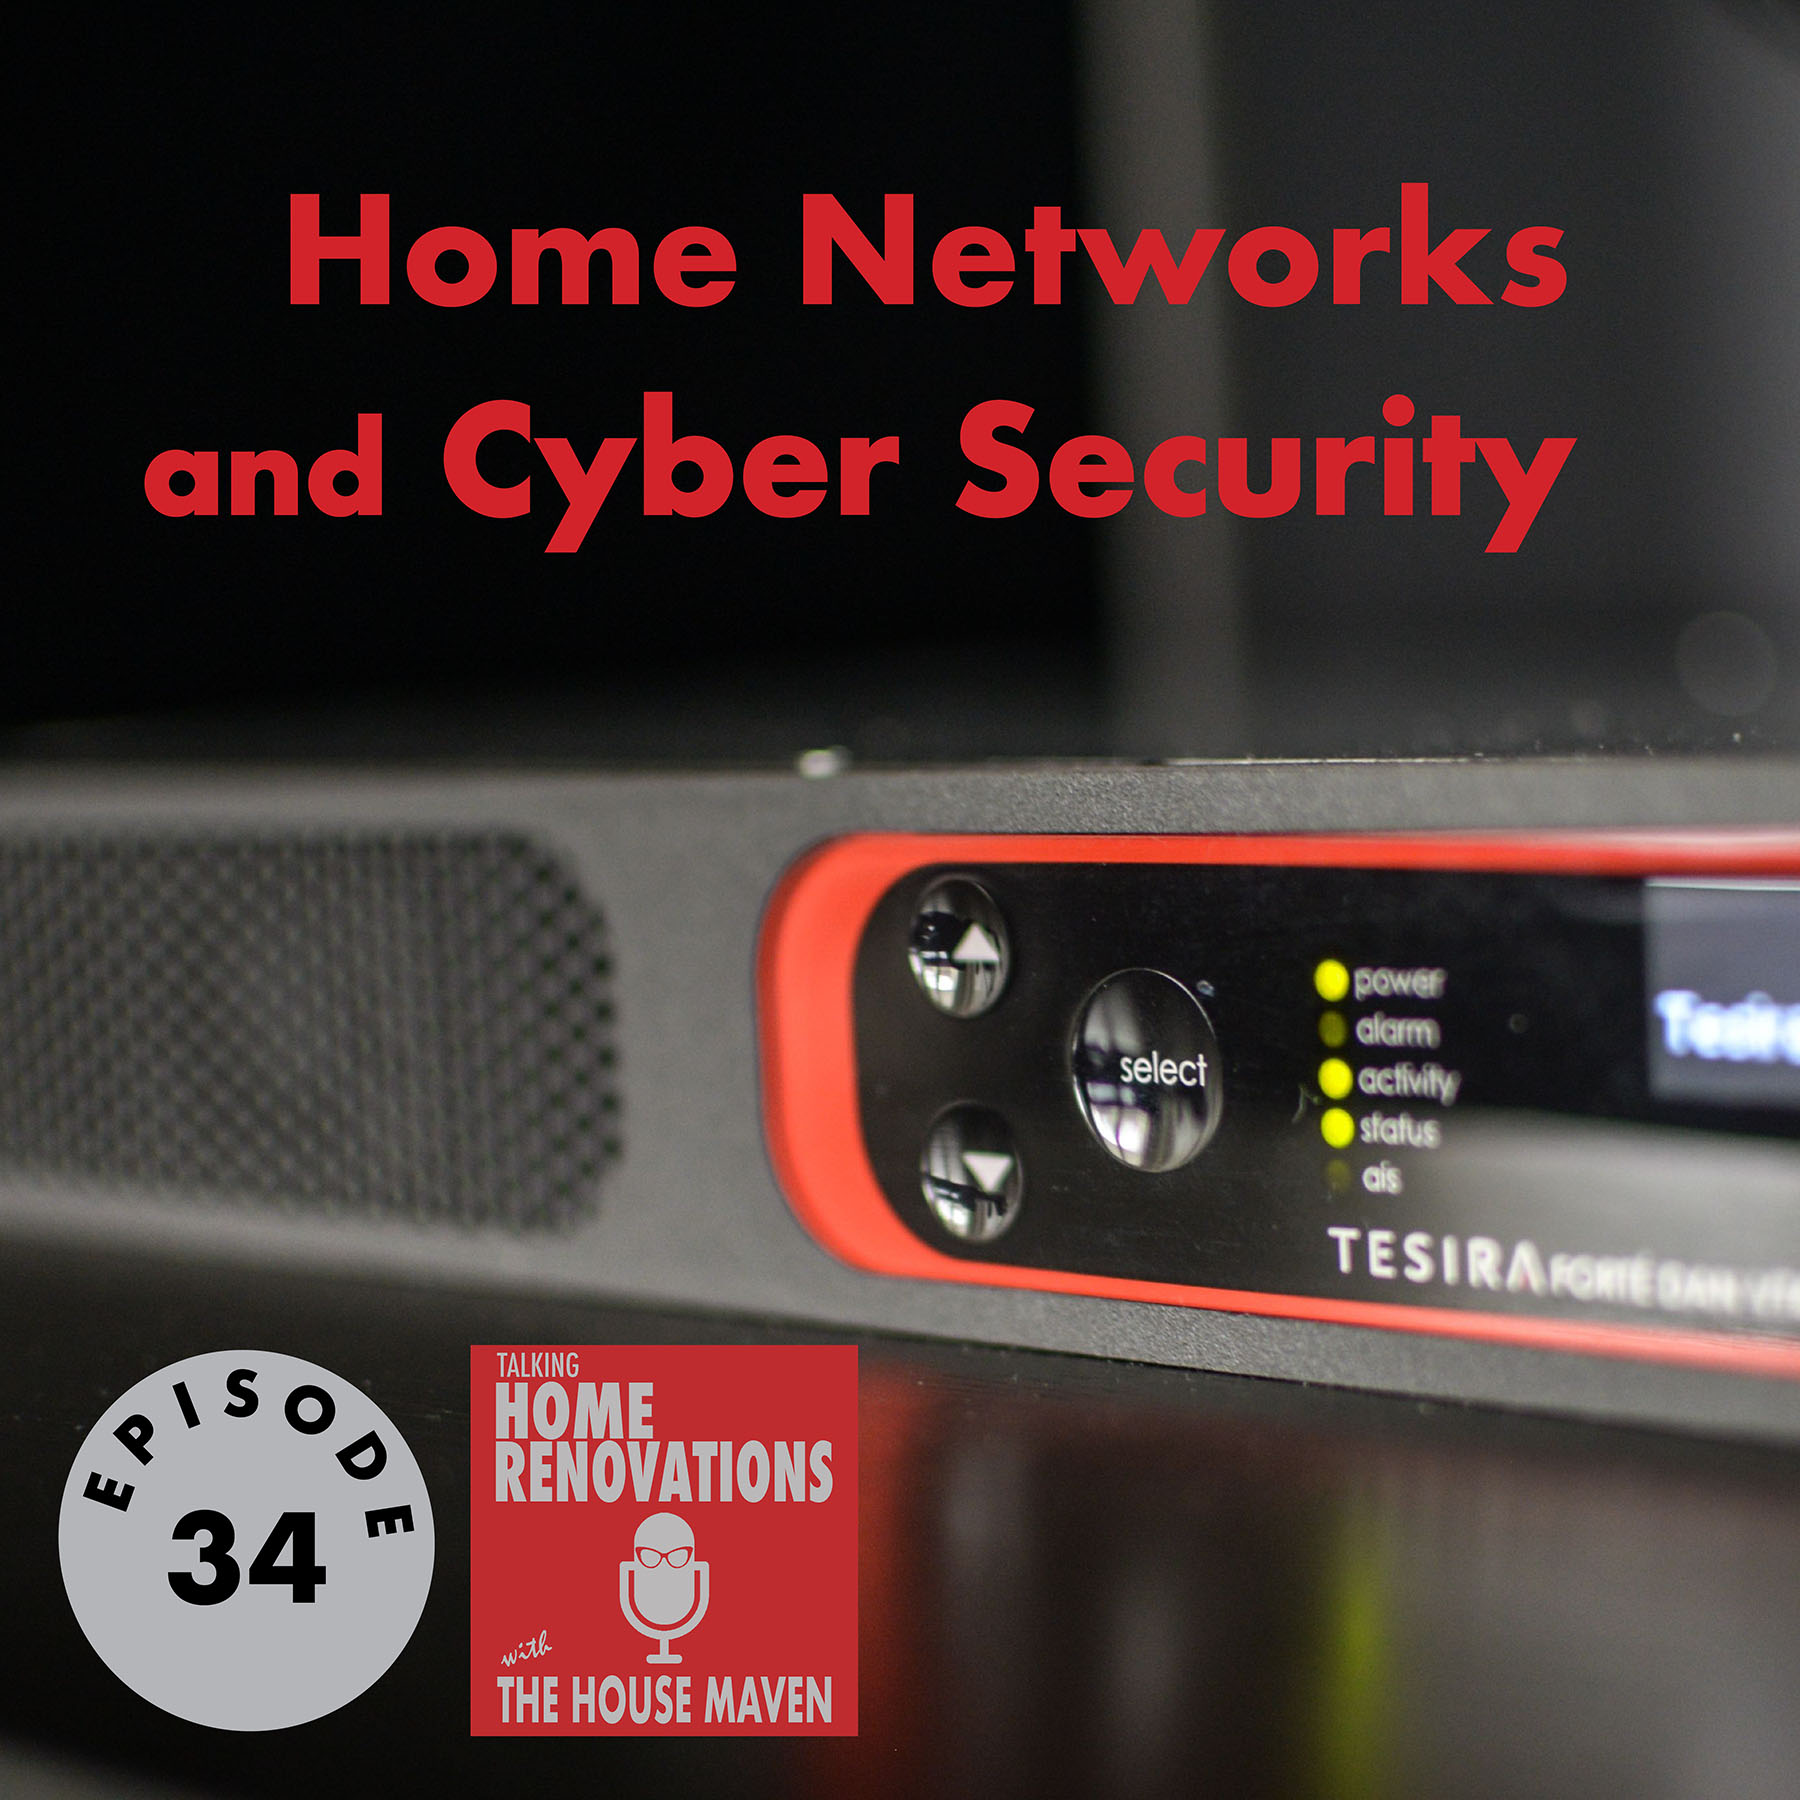 Home Networks and Cyber Security